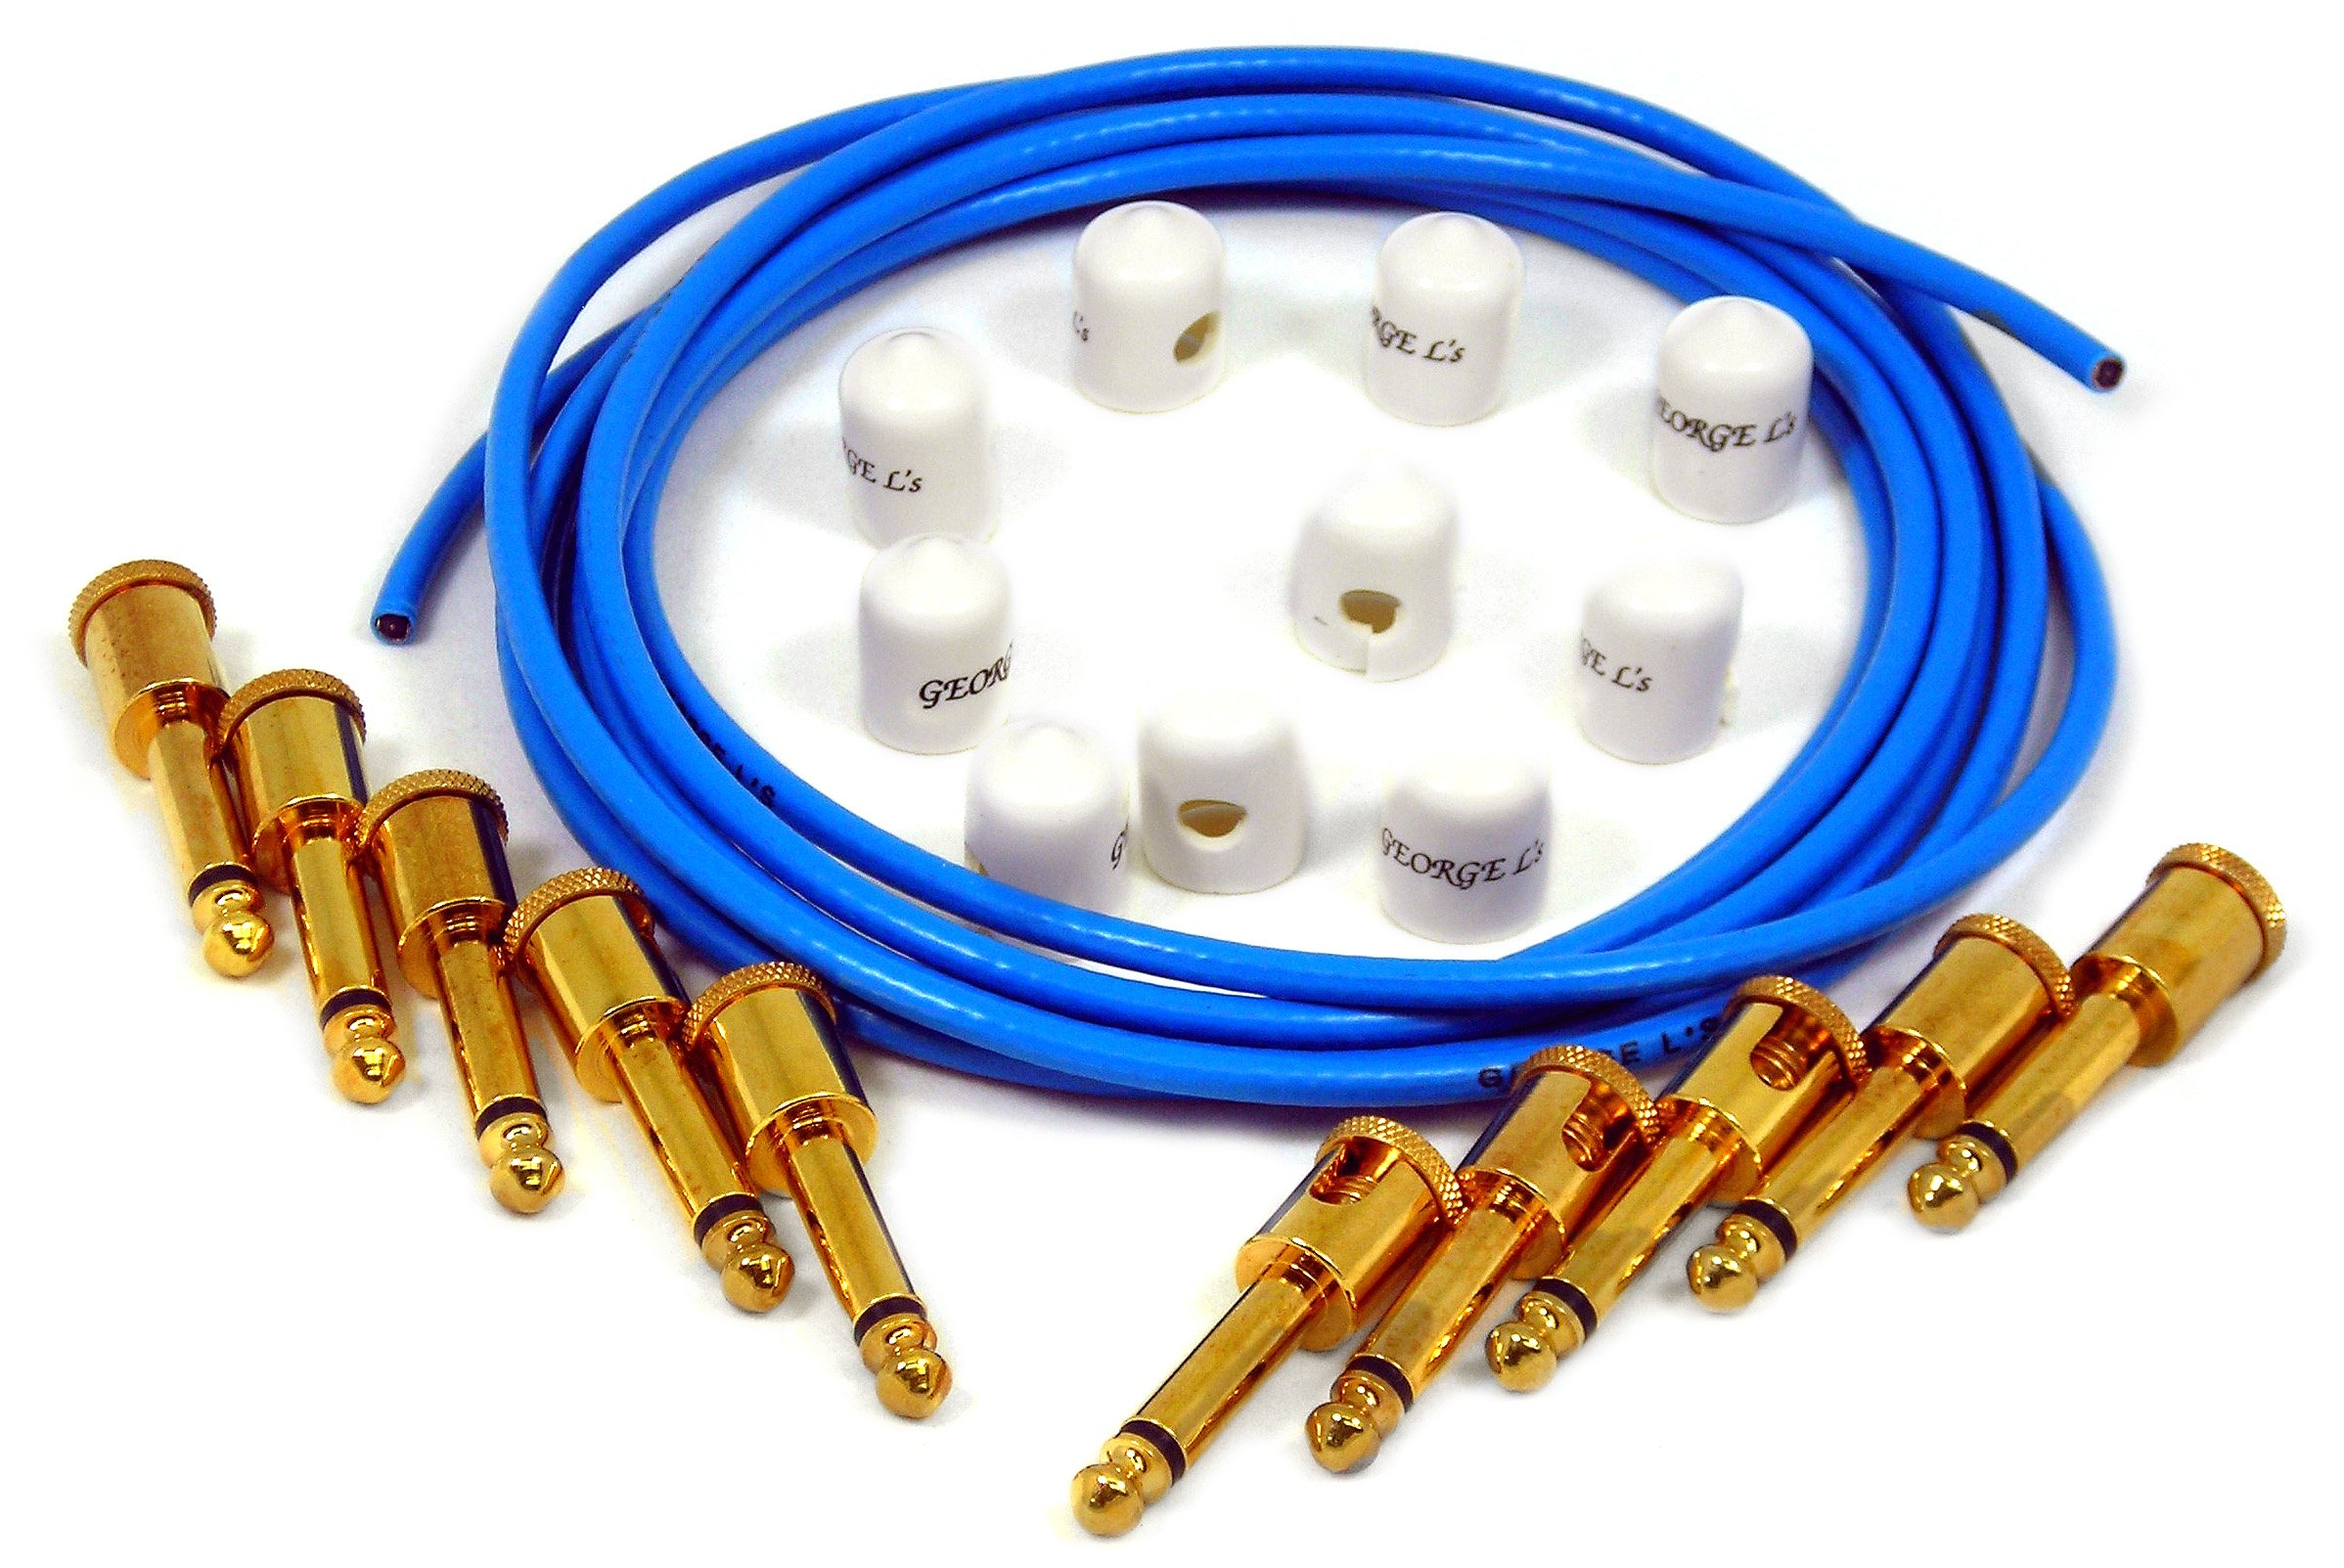 George L's Effects Kit (Blue Cable, Gold Right Angle Plugs)